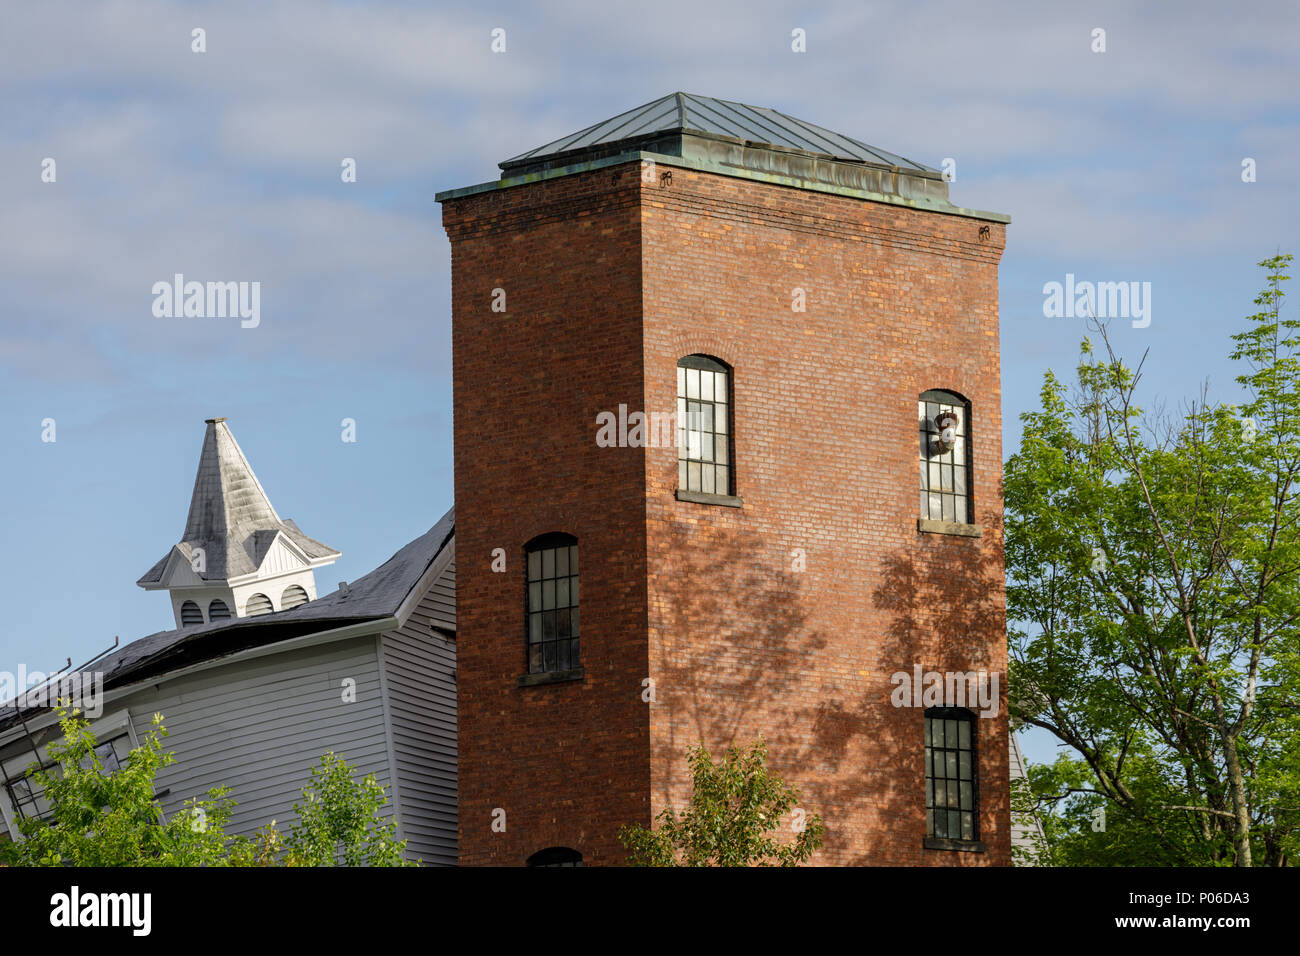 Roadside Mill Stock Photos & Roadside Mill Stock Images - Alamy